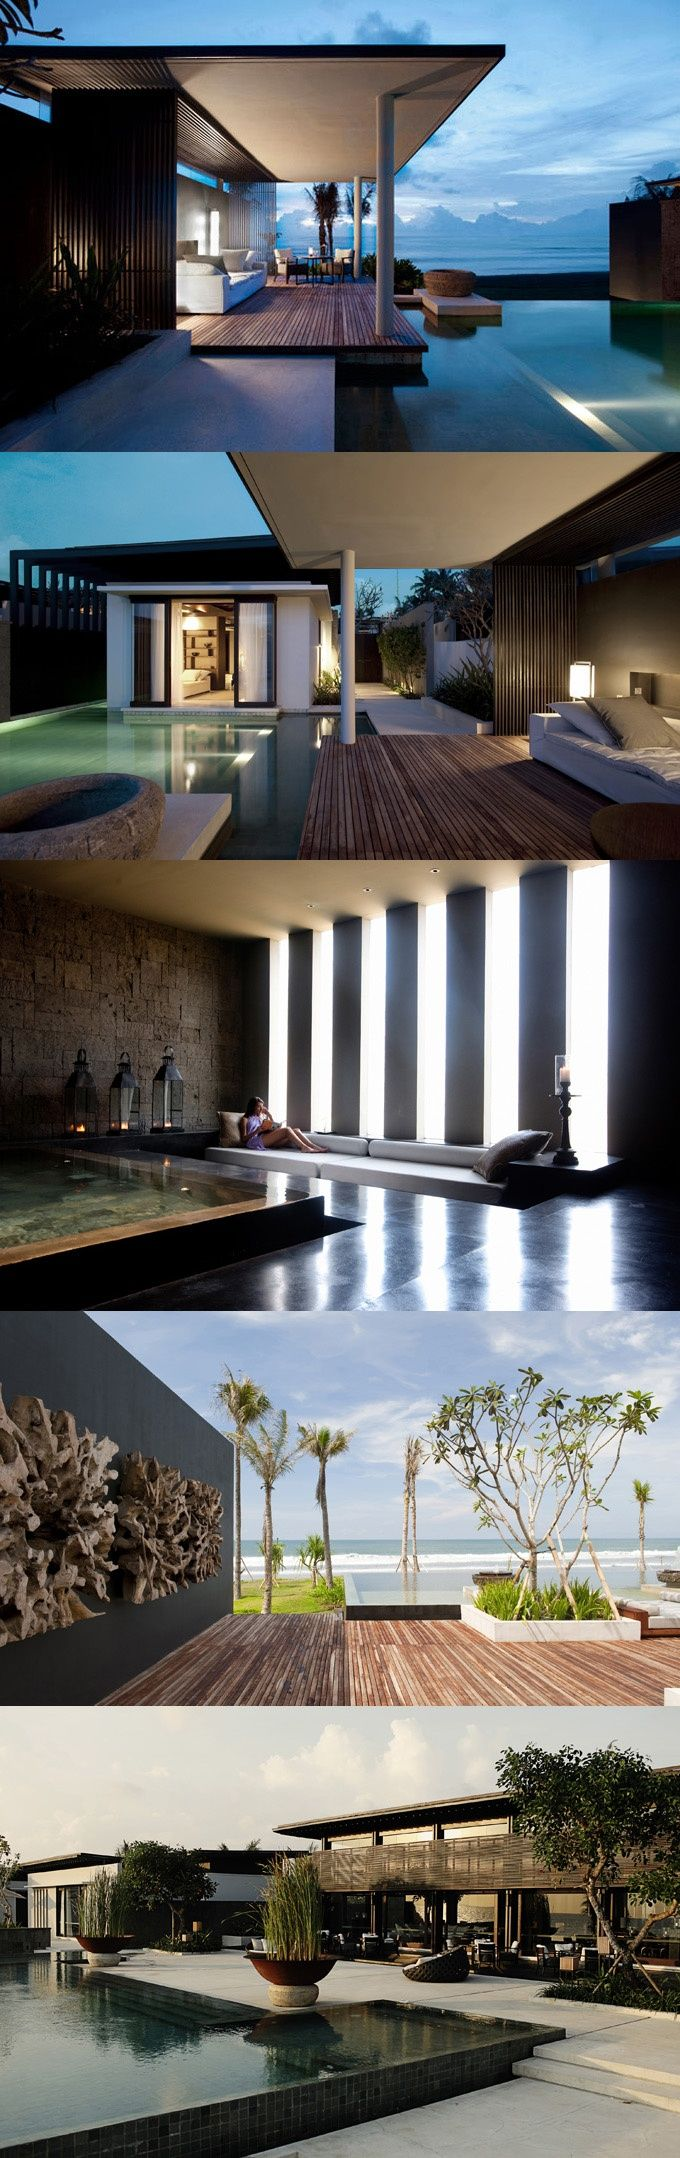 28 best ideas for hotel images on pinterest | architecture, home